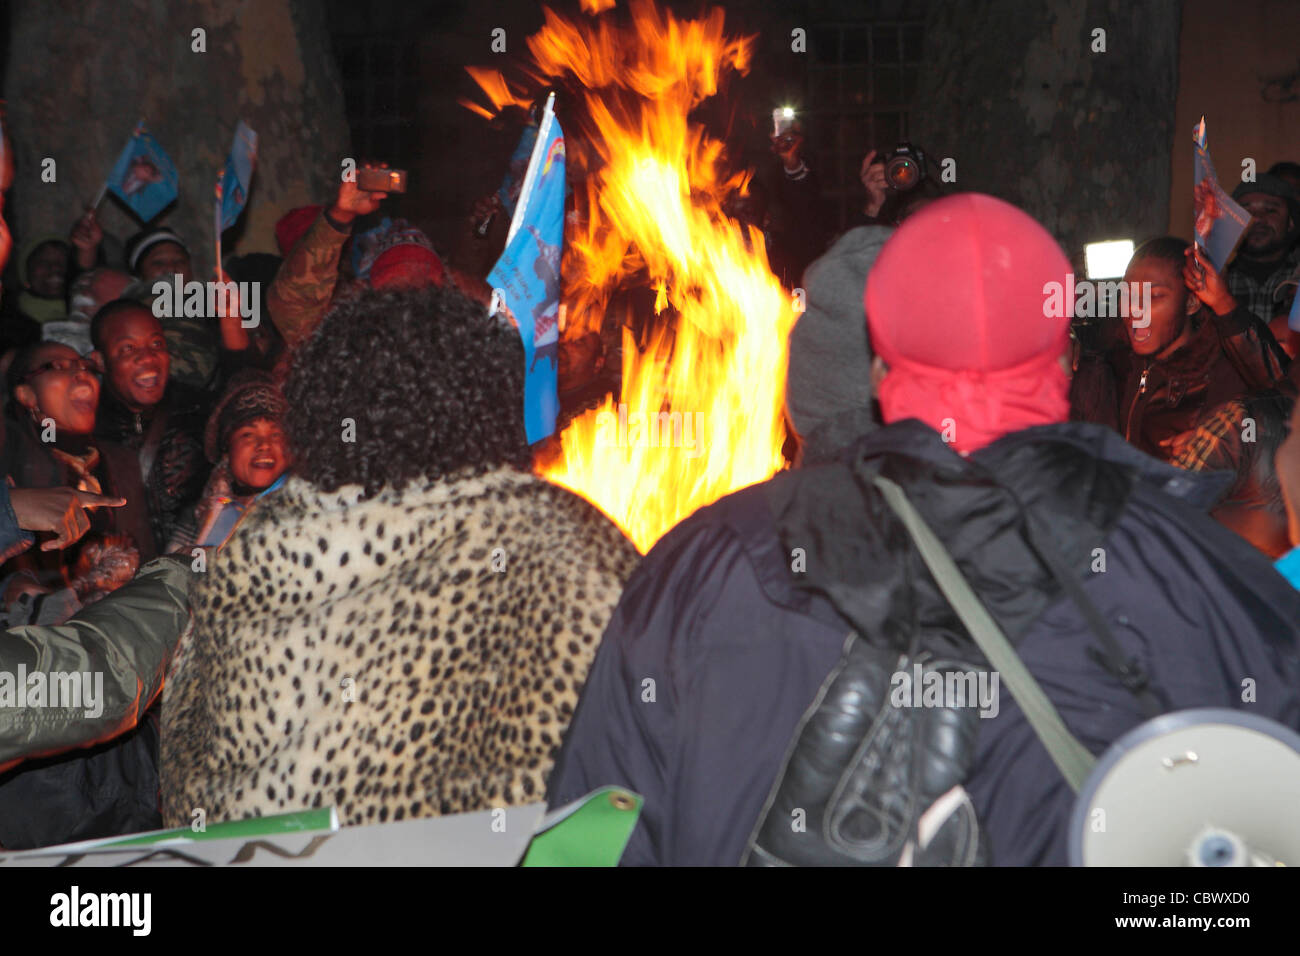 Congolese protesters set alight posters and banners in Whitehall. - Stock Image